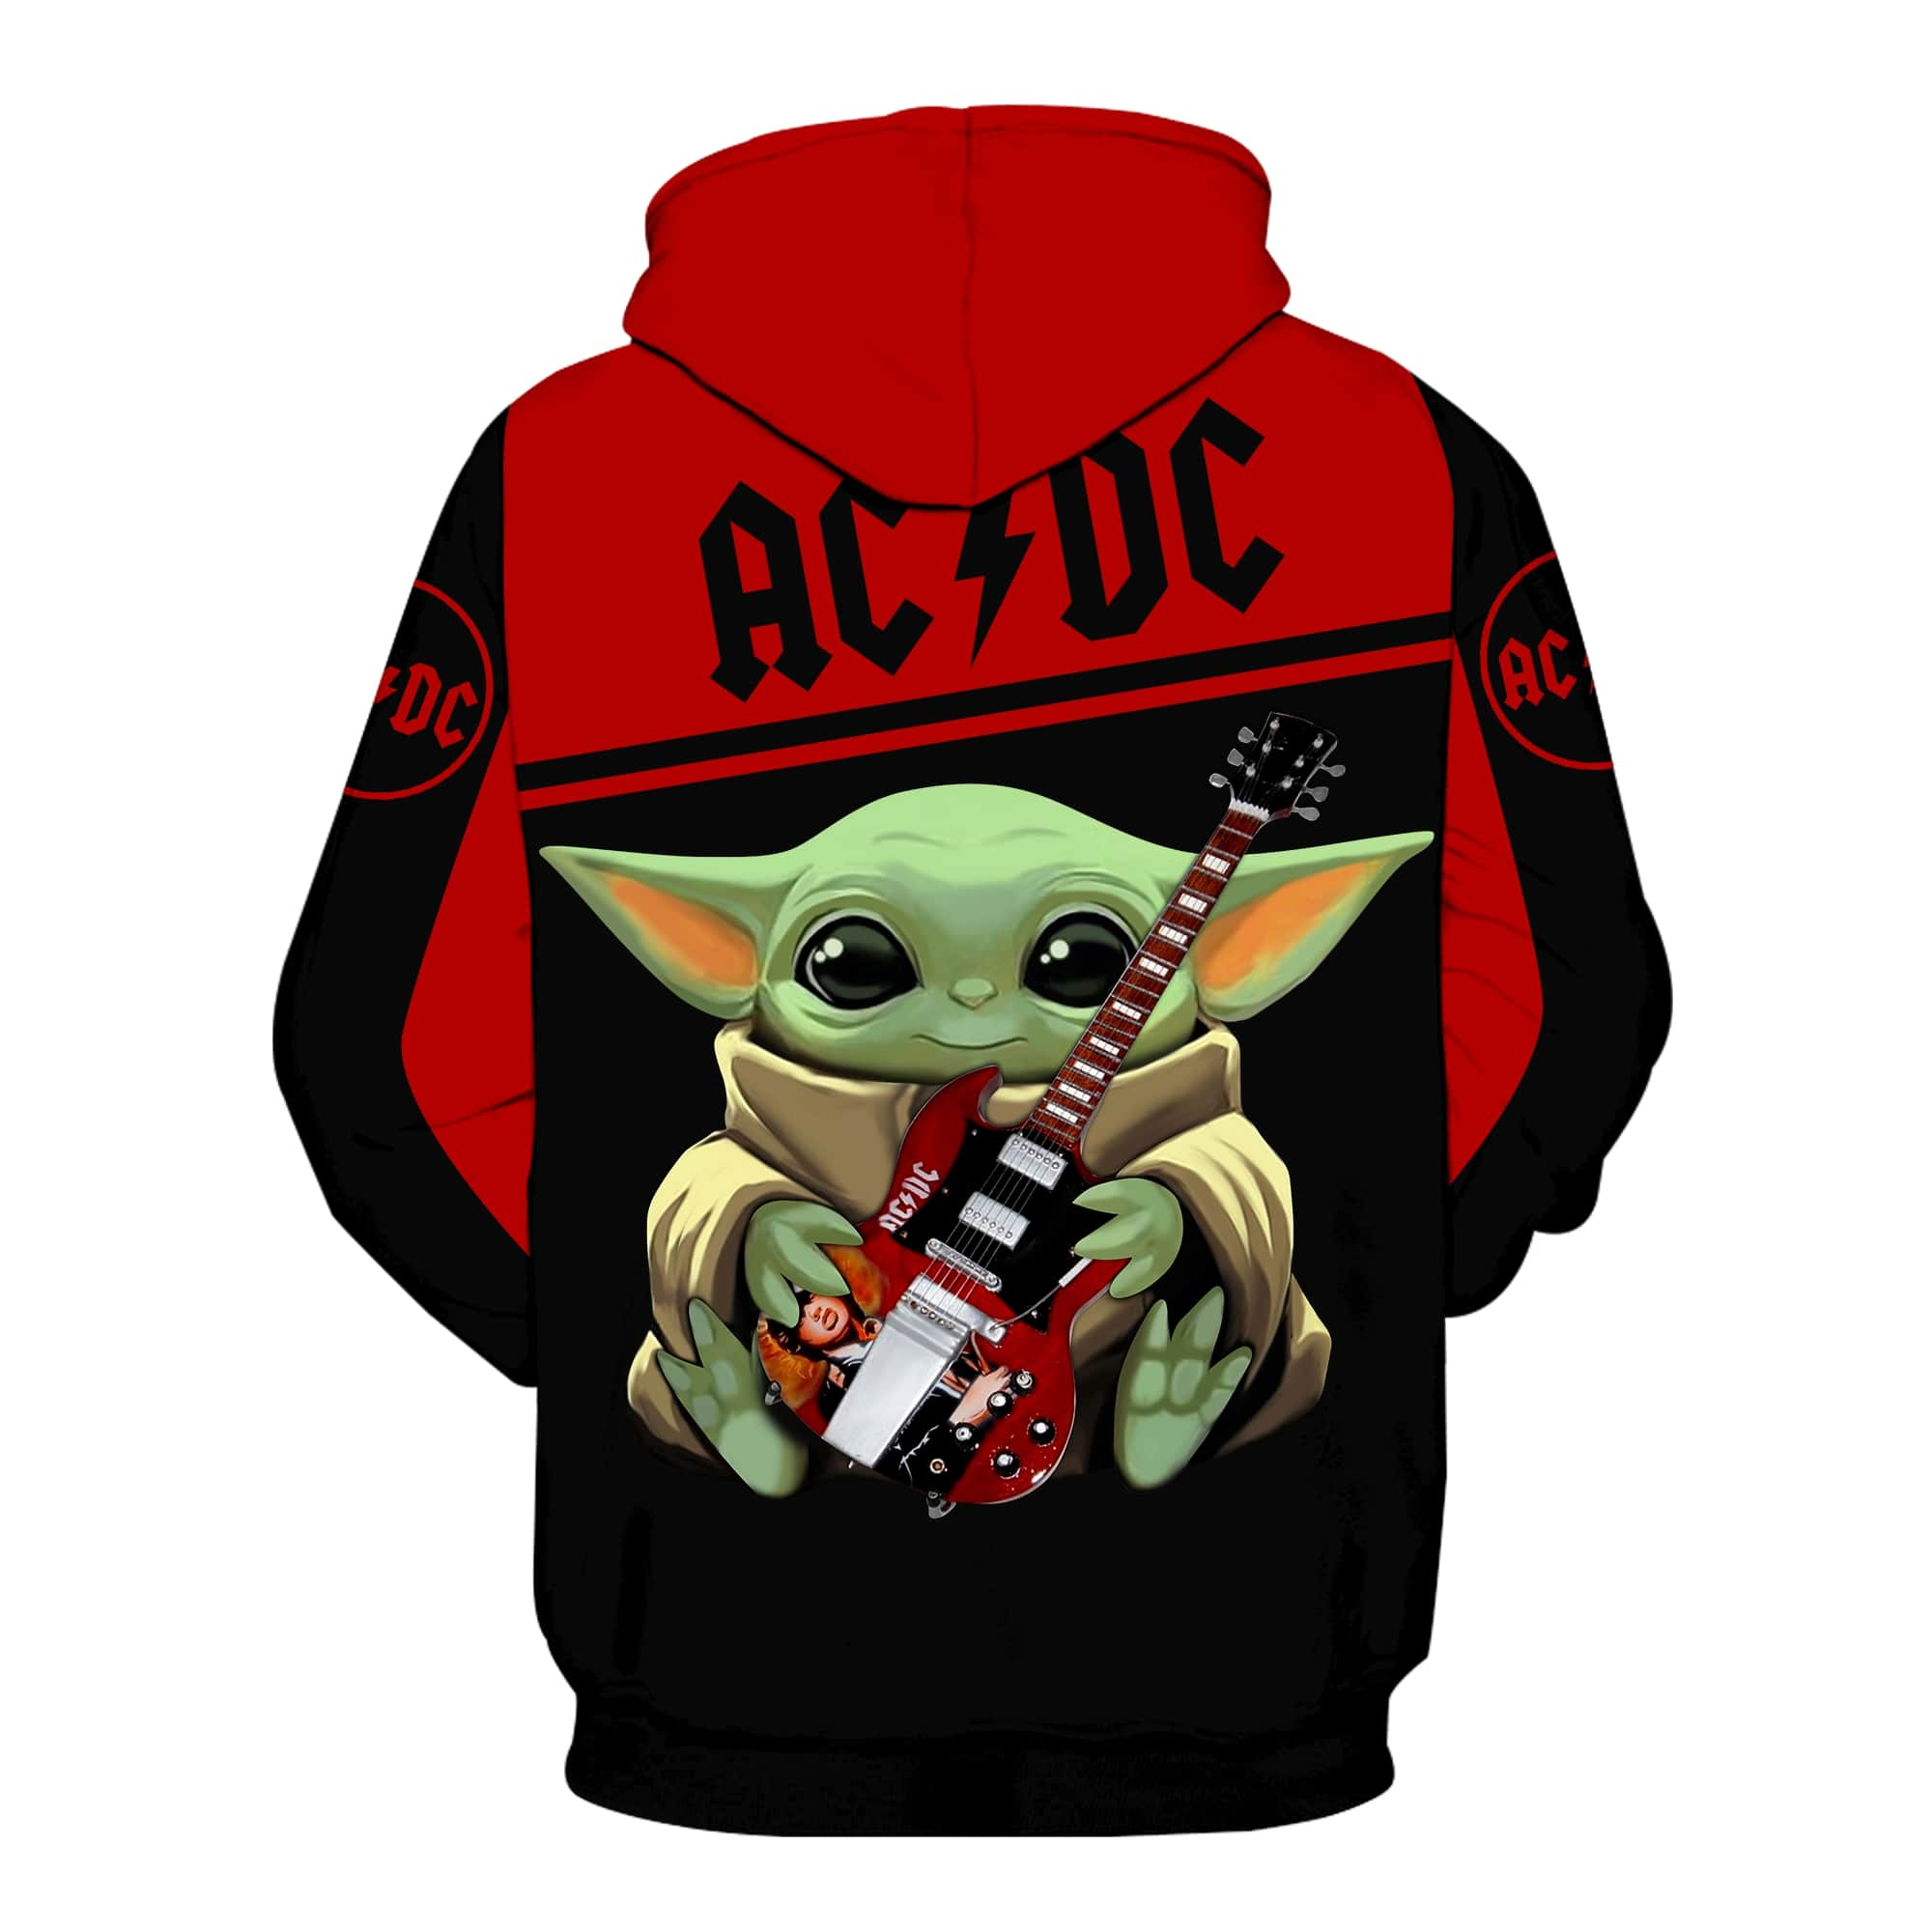 ACDC baby yoda all over print hoodie - back